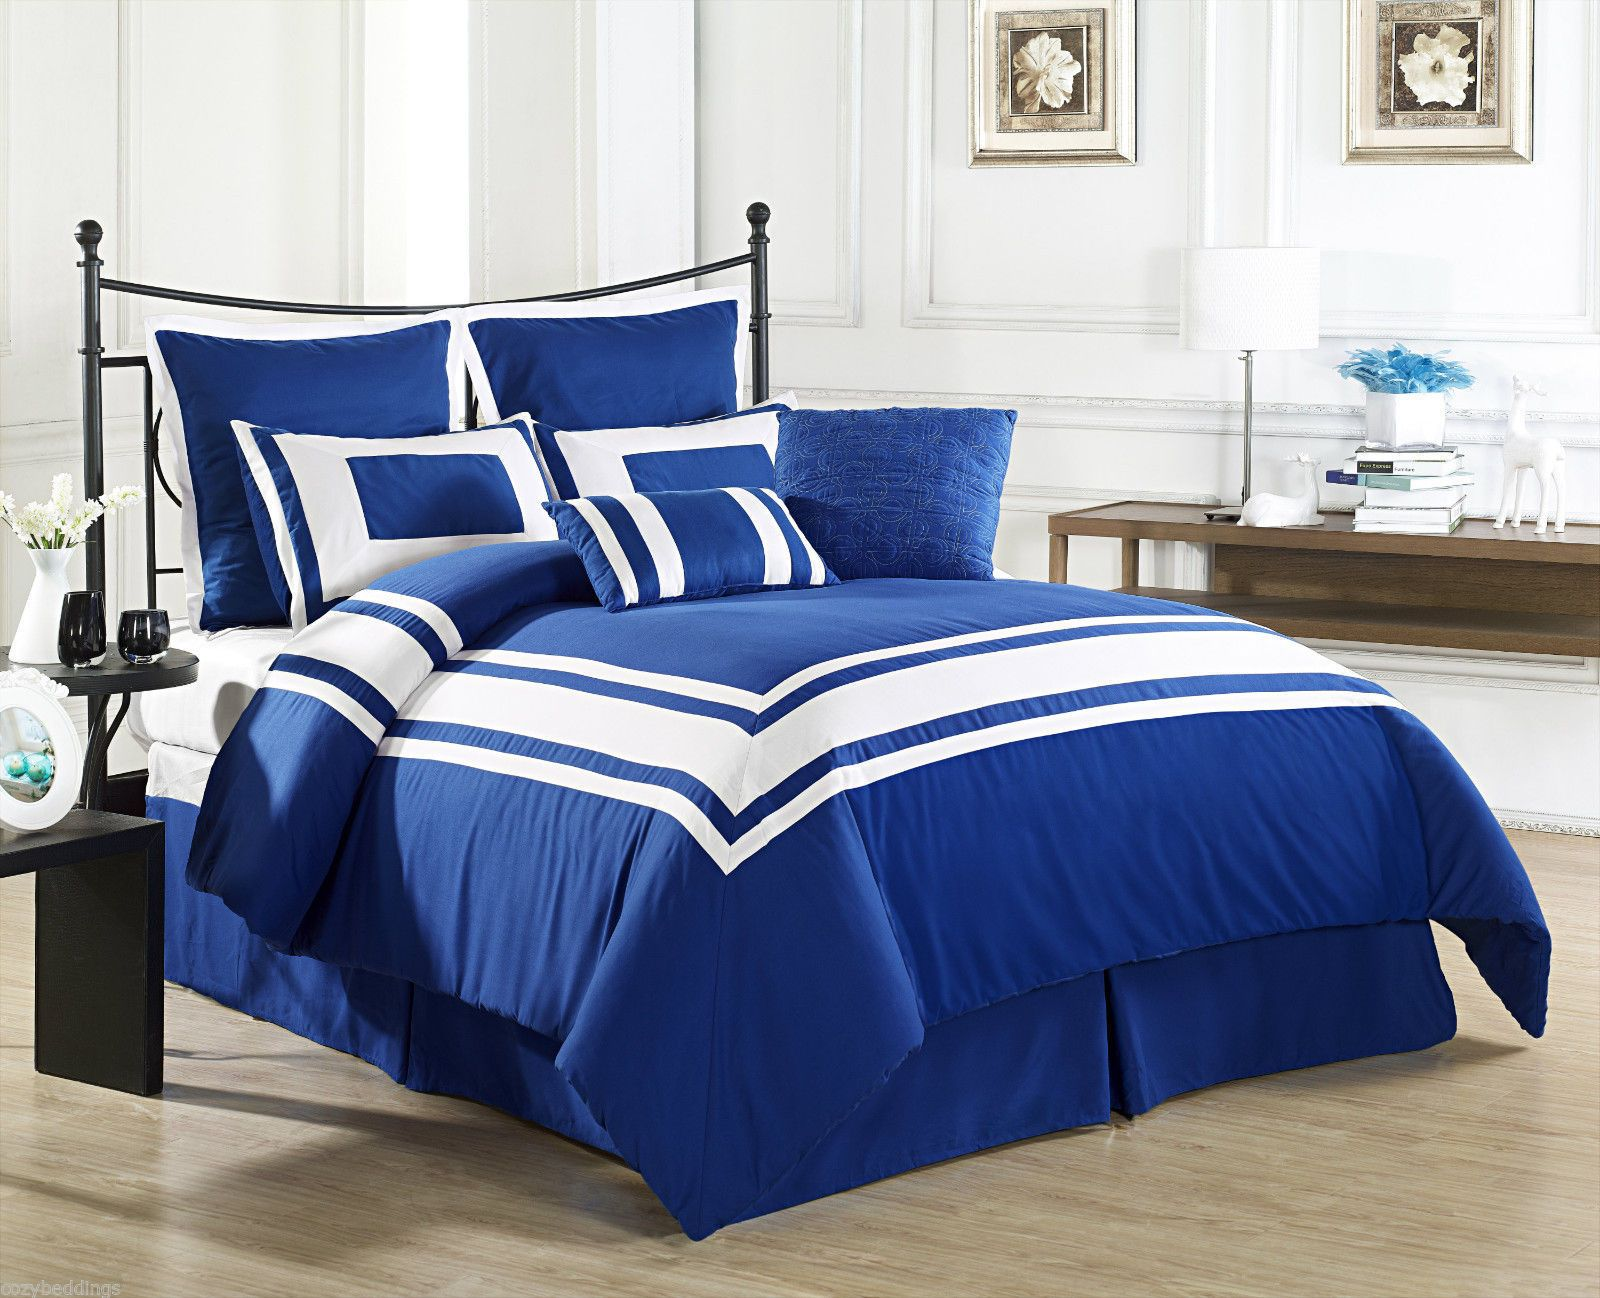 lux decor royal blue queen size bed 8 piece comforter set white stripe bedding bedroom. Black Bedroom Furniture Sets. Home Design Ideas